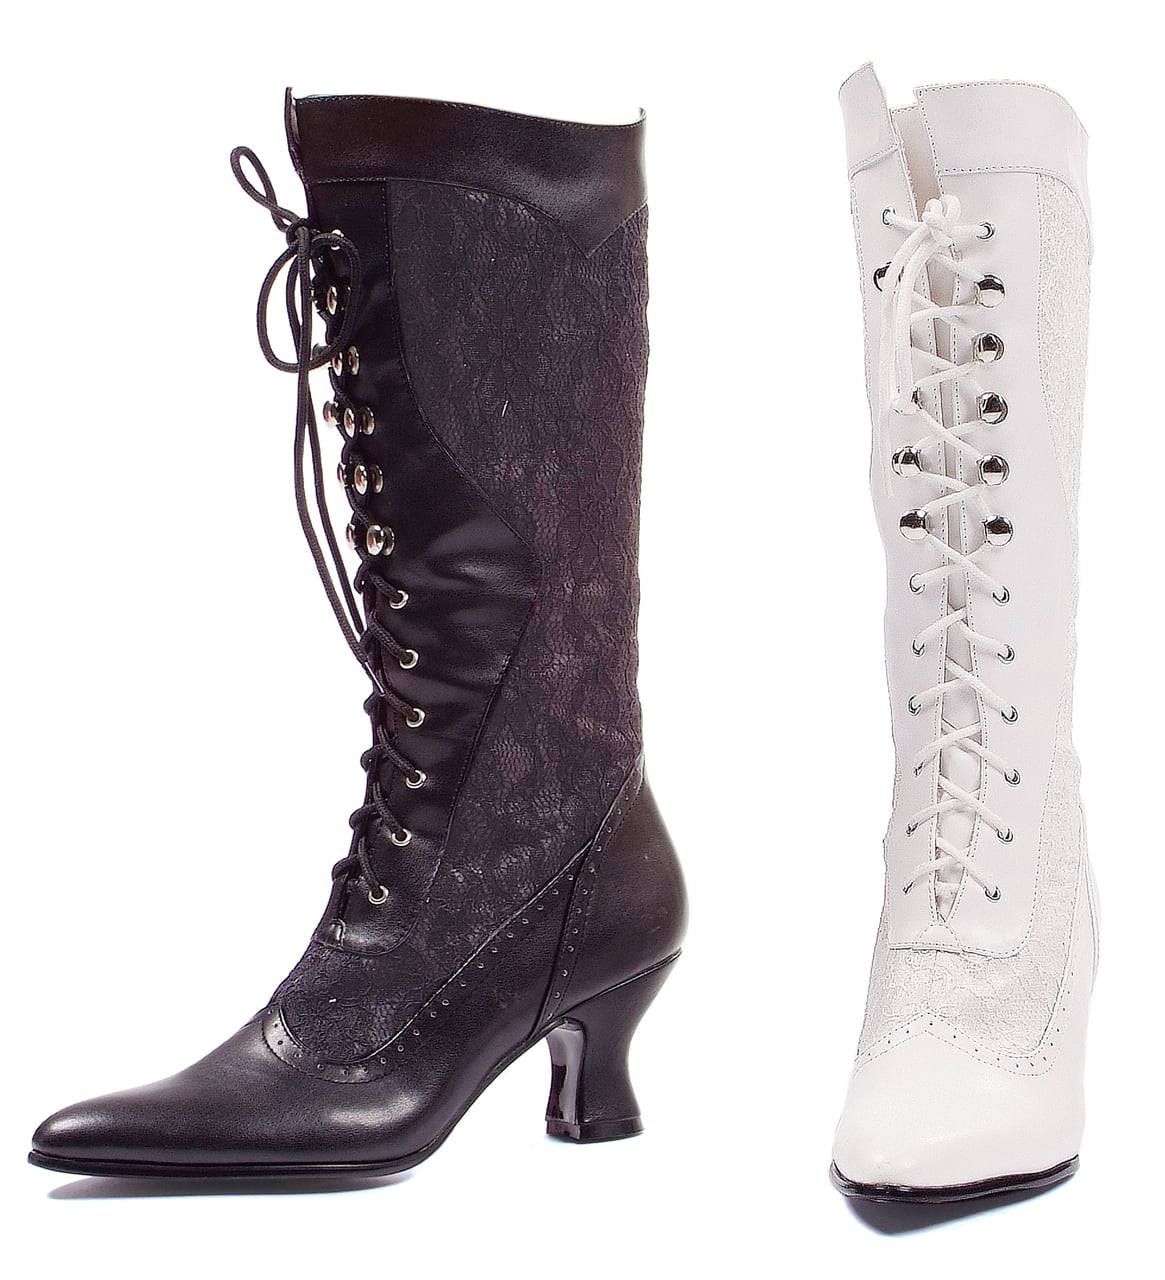 253-Rebecca Lace Heel Boot Economical, stylish, and eye-catching shoes